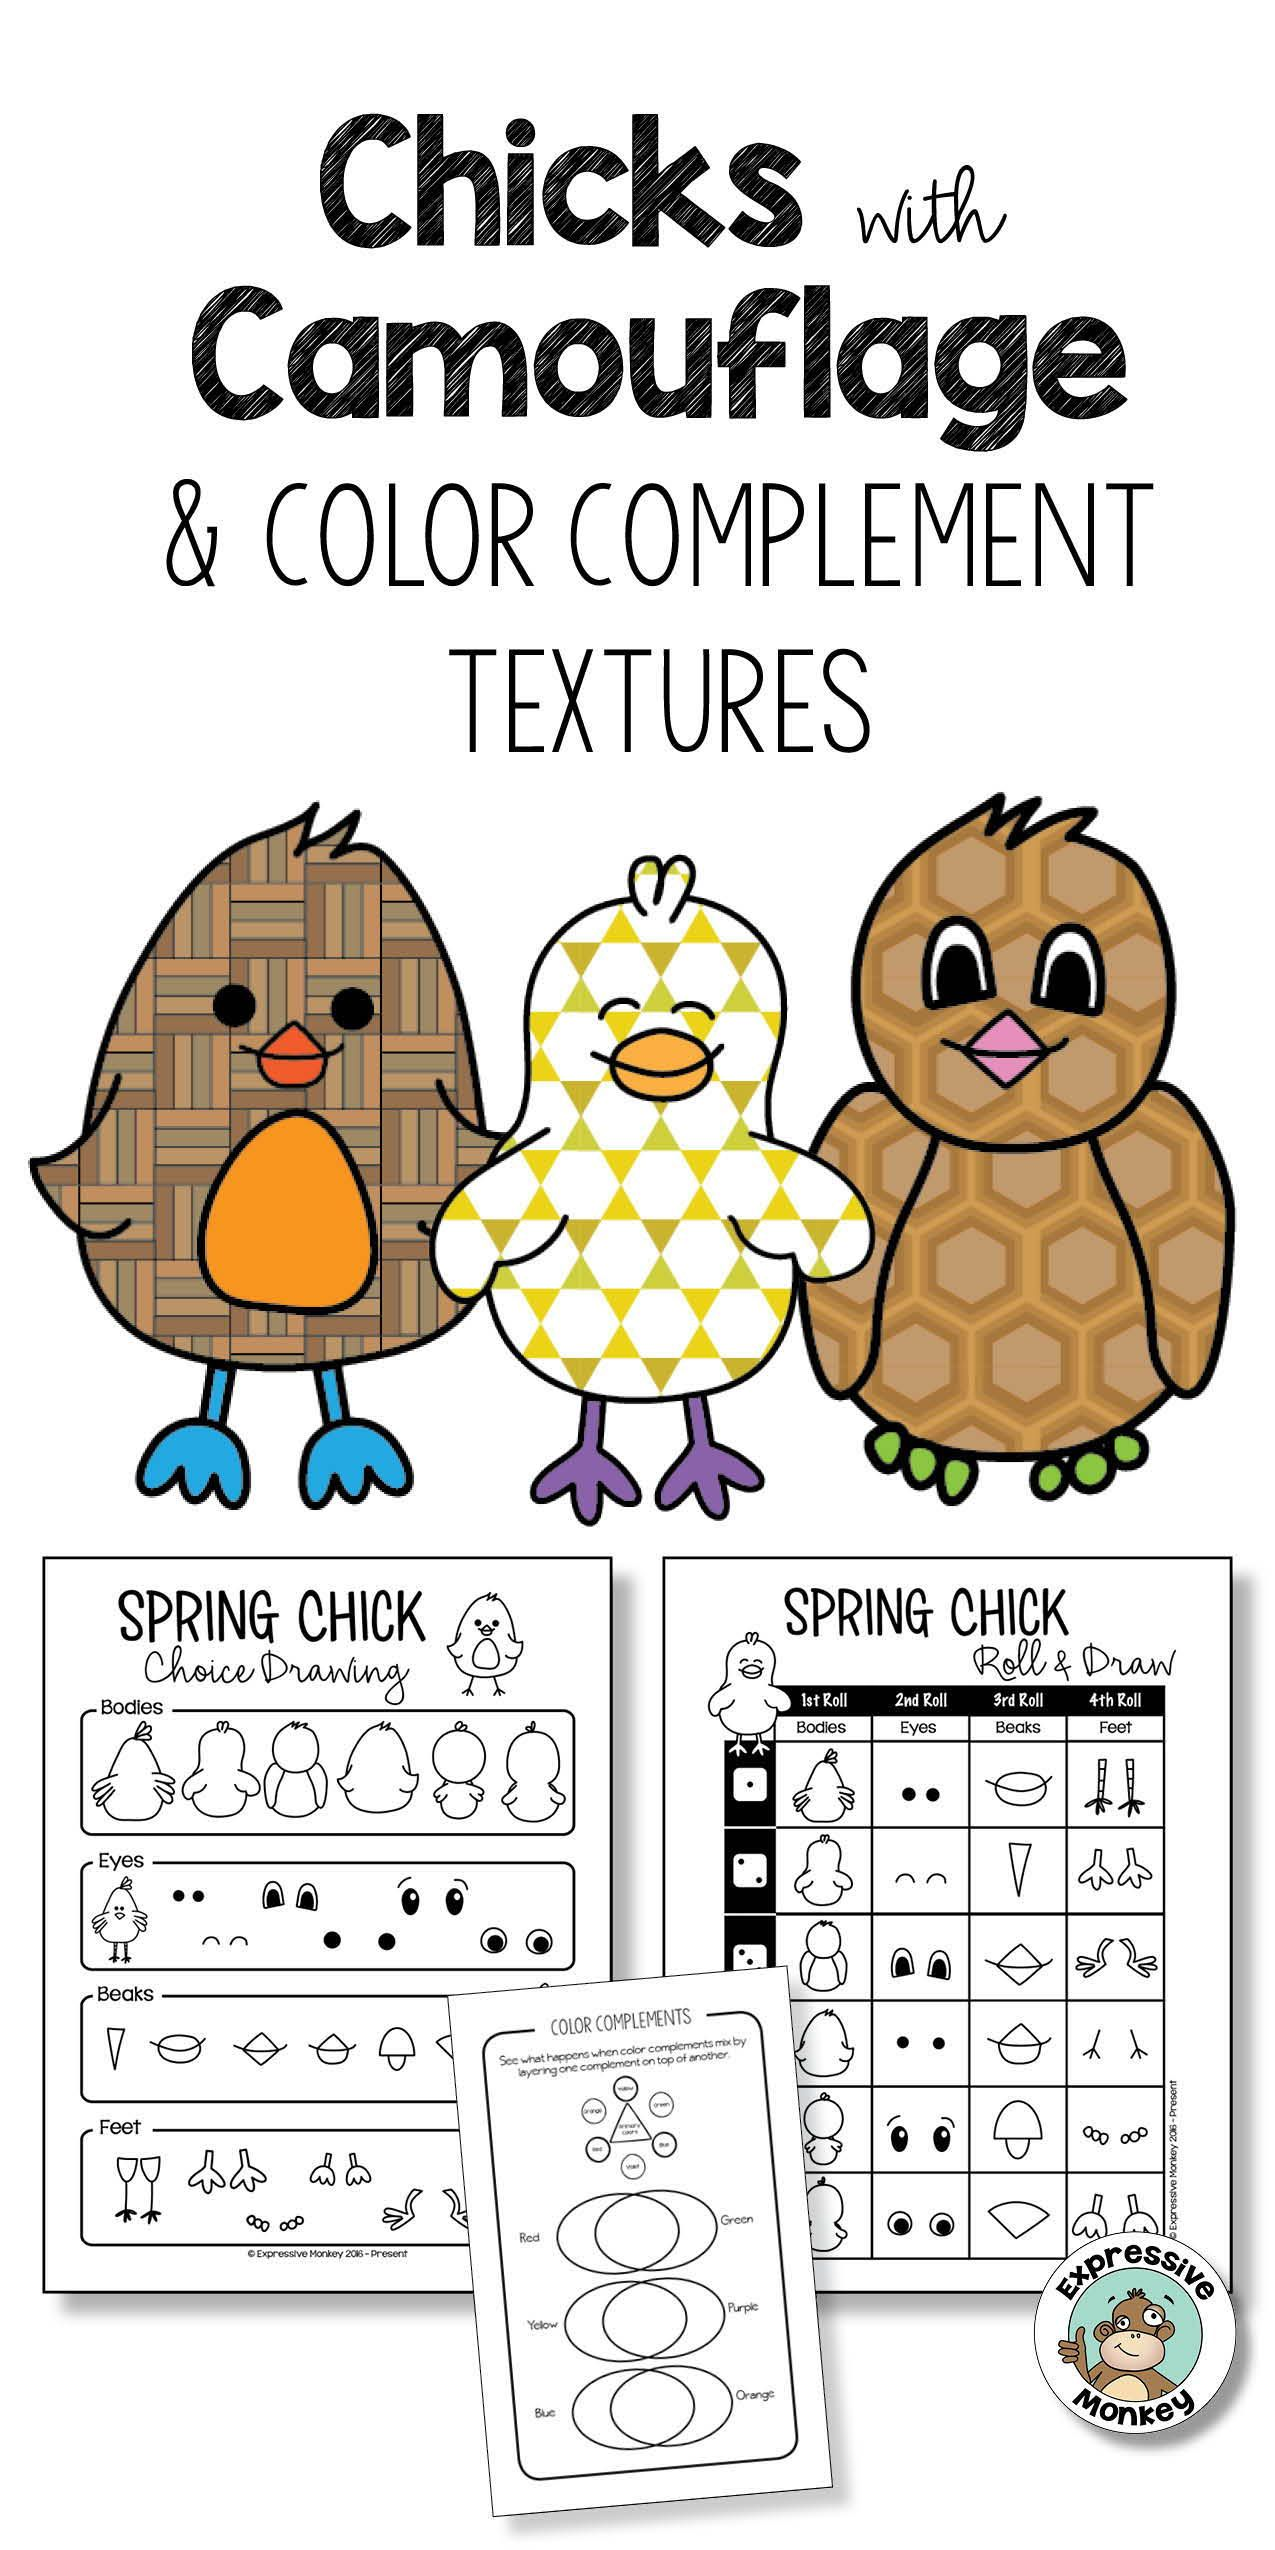 What Do You Get When You Mix Animal Camouflage With Color Theory Textures And Drawing A Delig Art Activities For Kids Art Activities Art Lessons Elementary